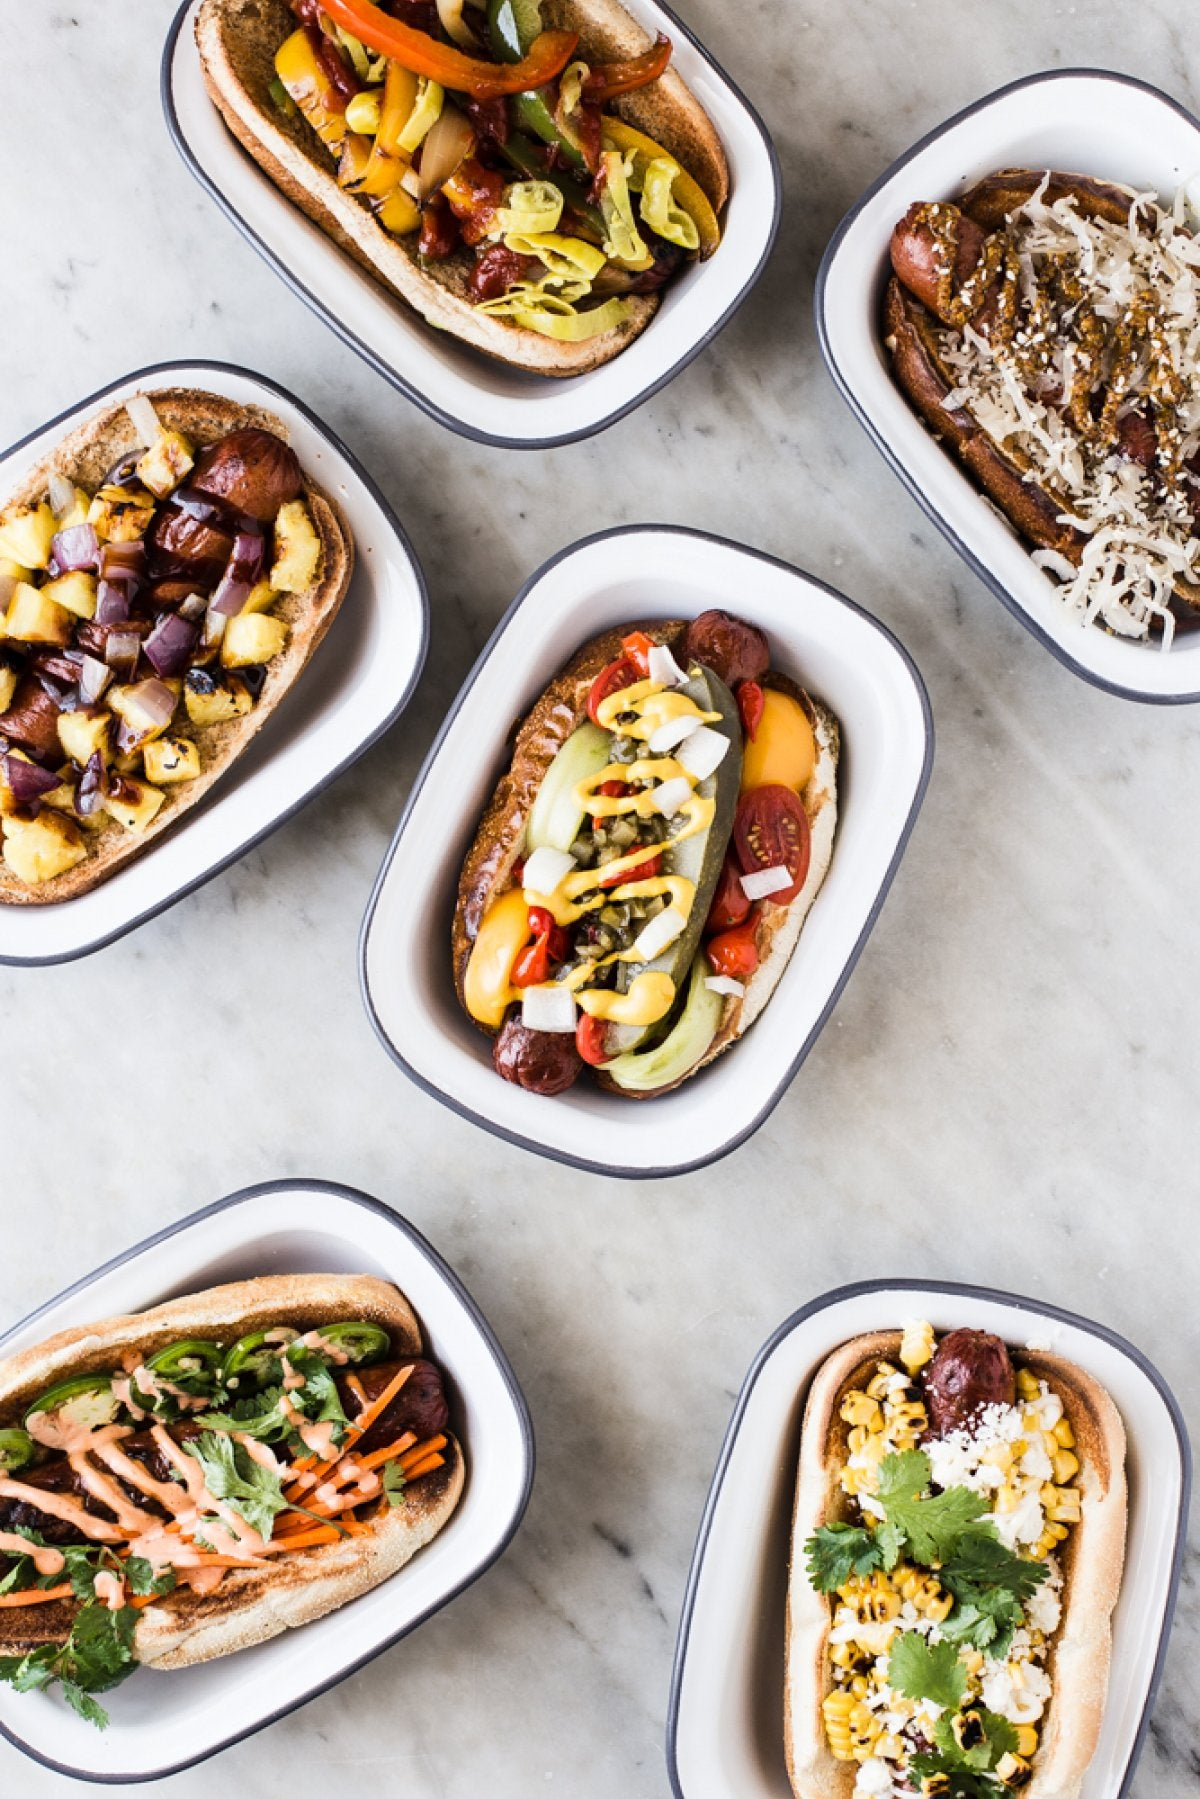 Unique Hot Dog Topping Recipes and Ideas